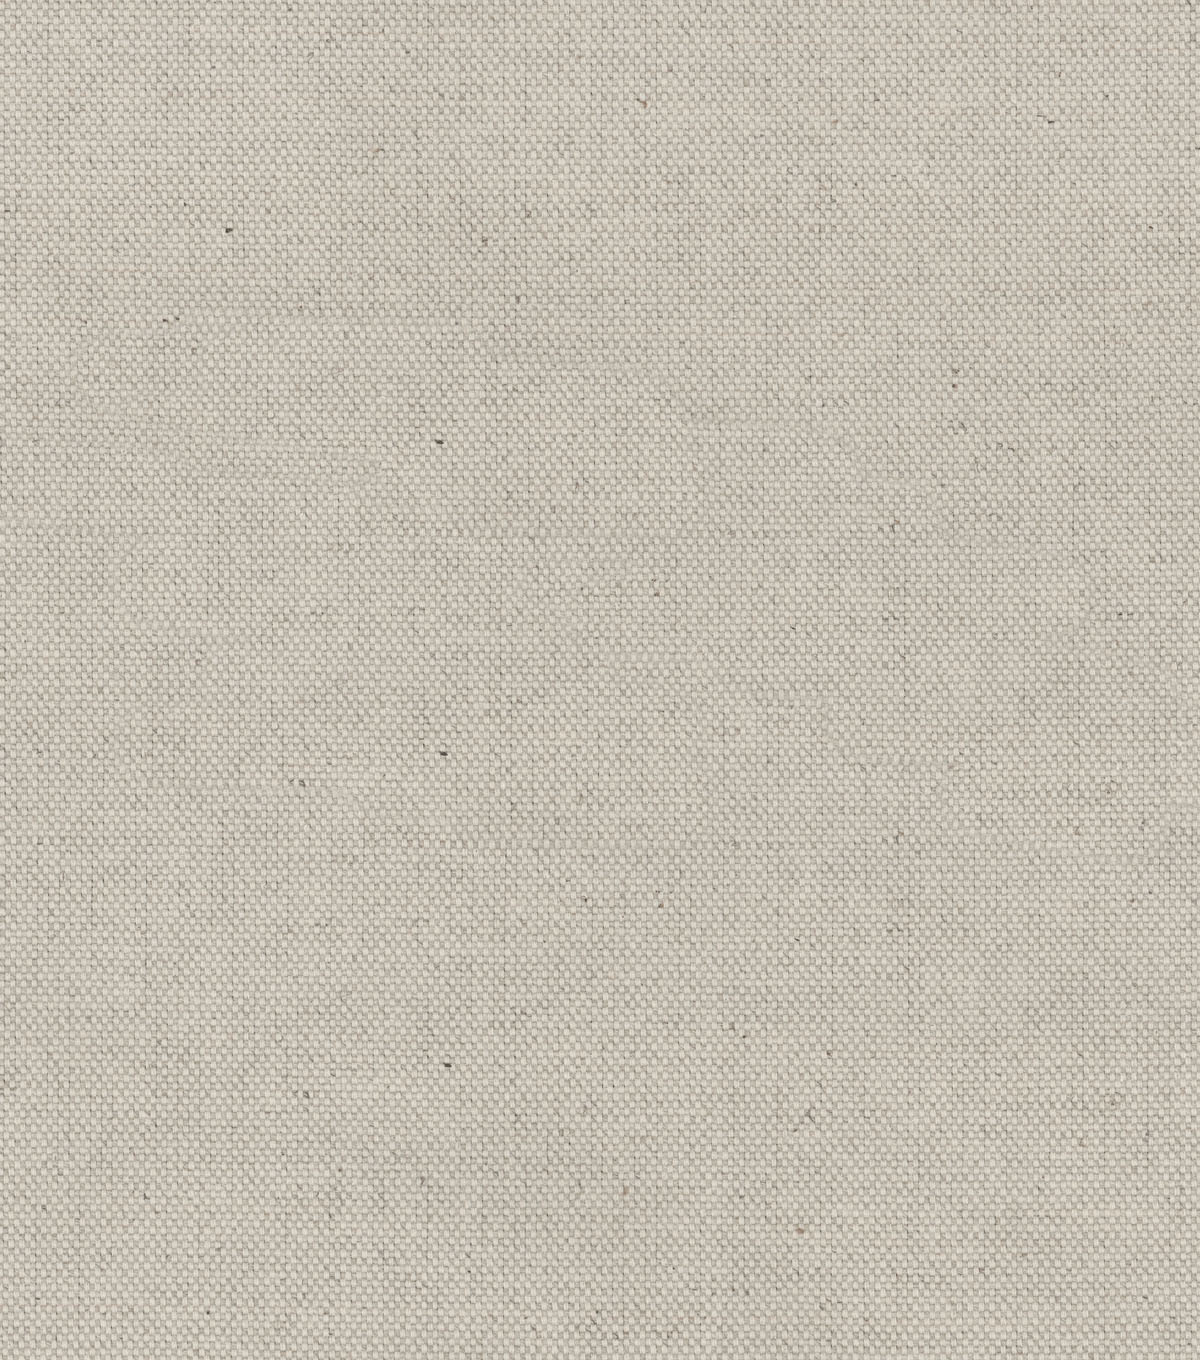 P/K Lifestyles Solid Fabric 54\u0022-Union Solid/Twine